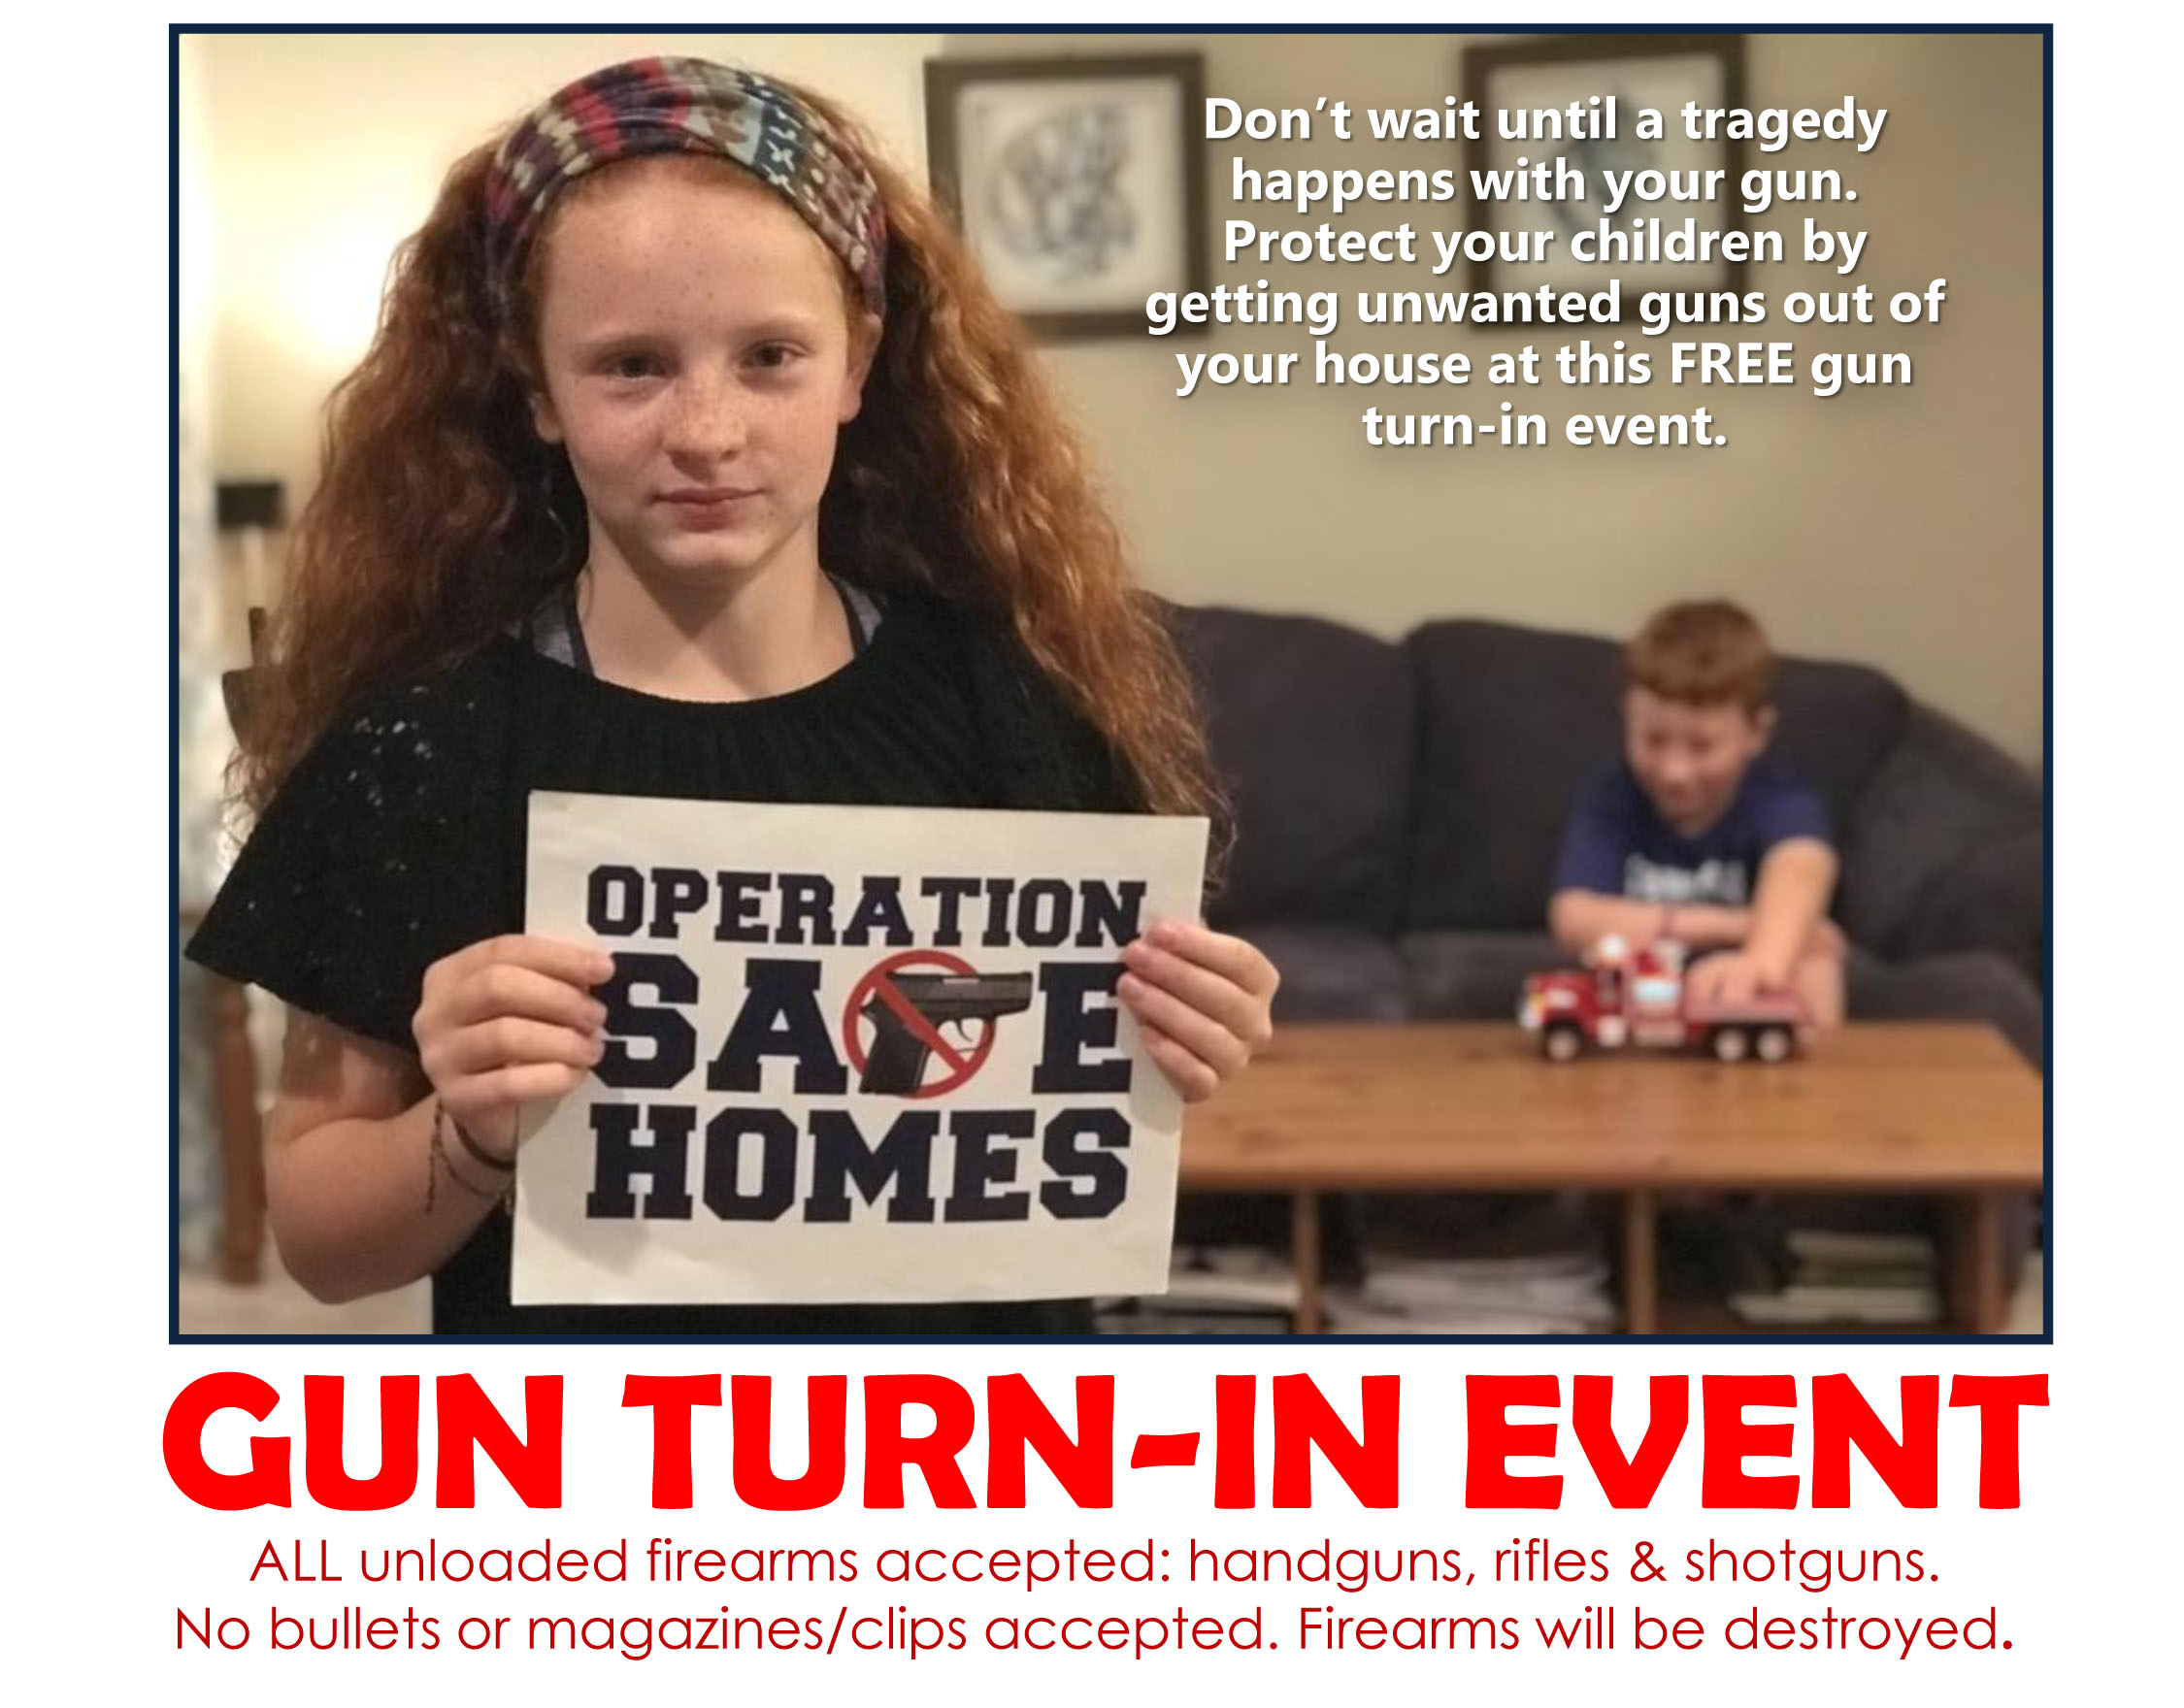 'Operation Safe Homes' free gun turn-in event set for 8 police departments in Montgomery County